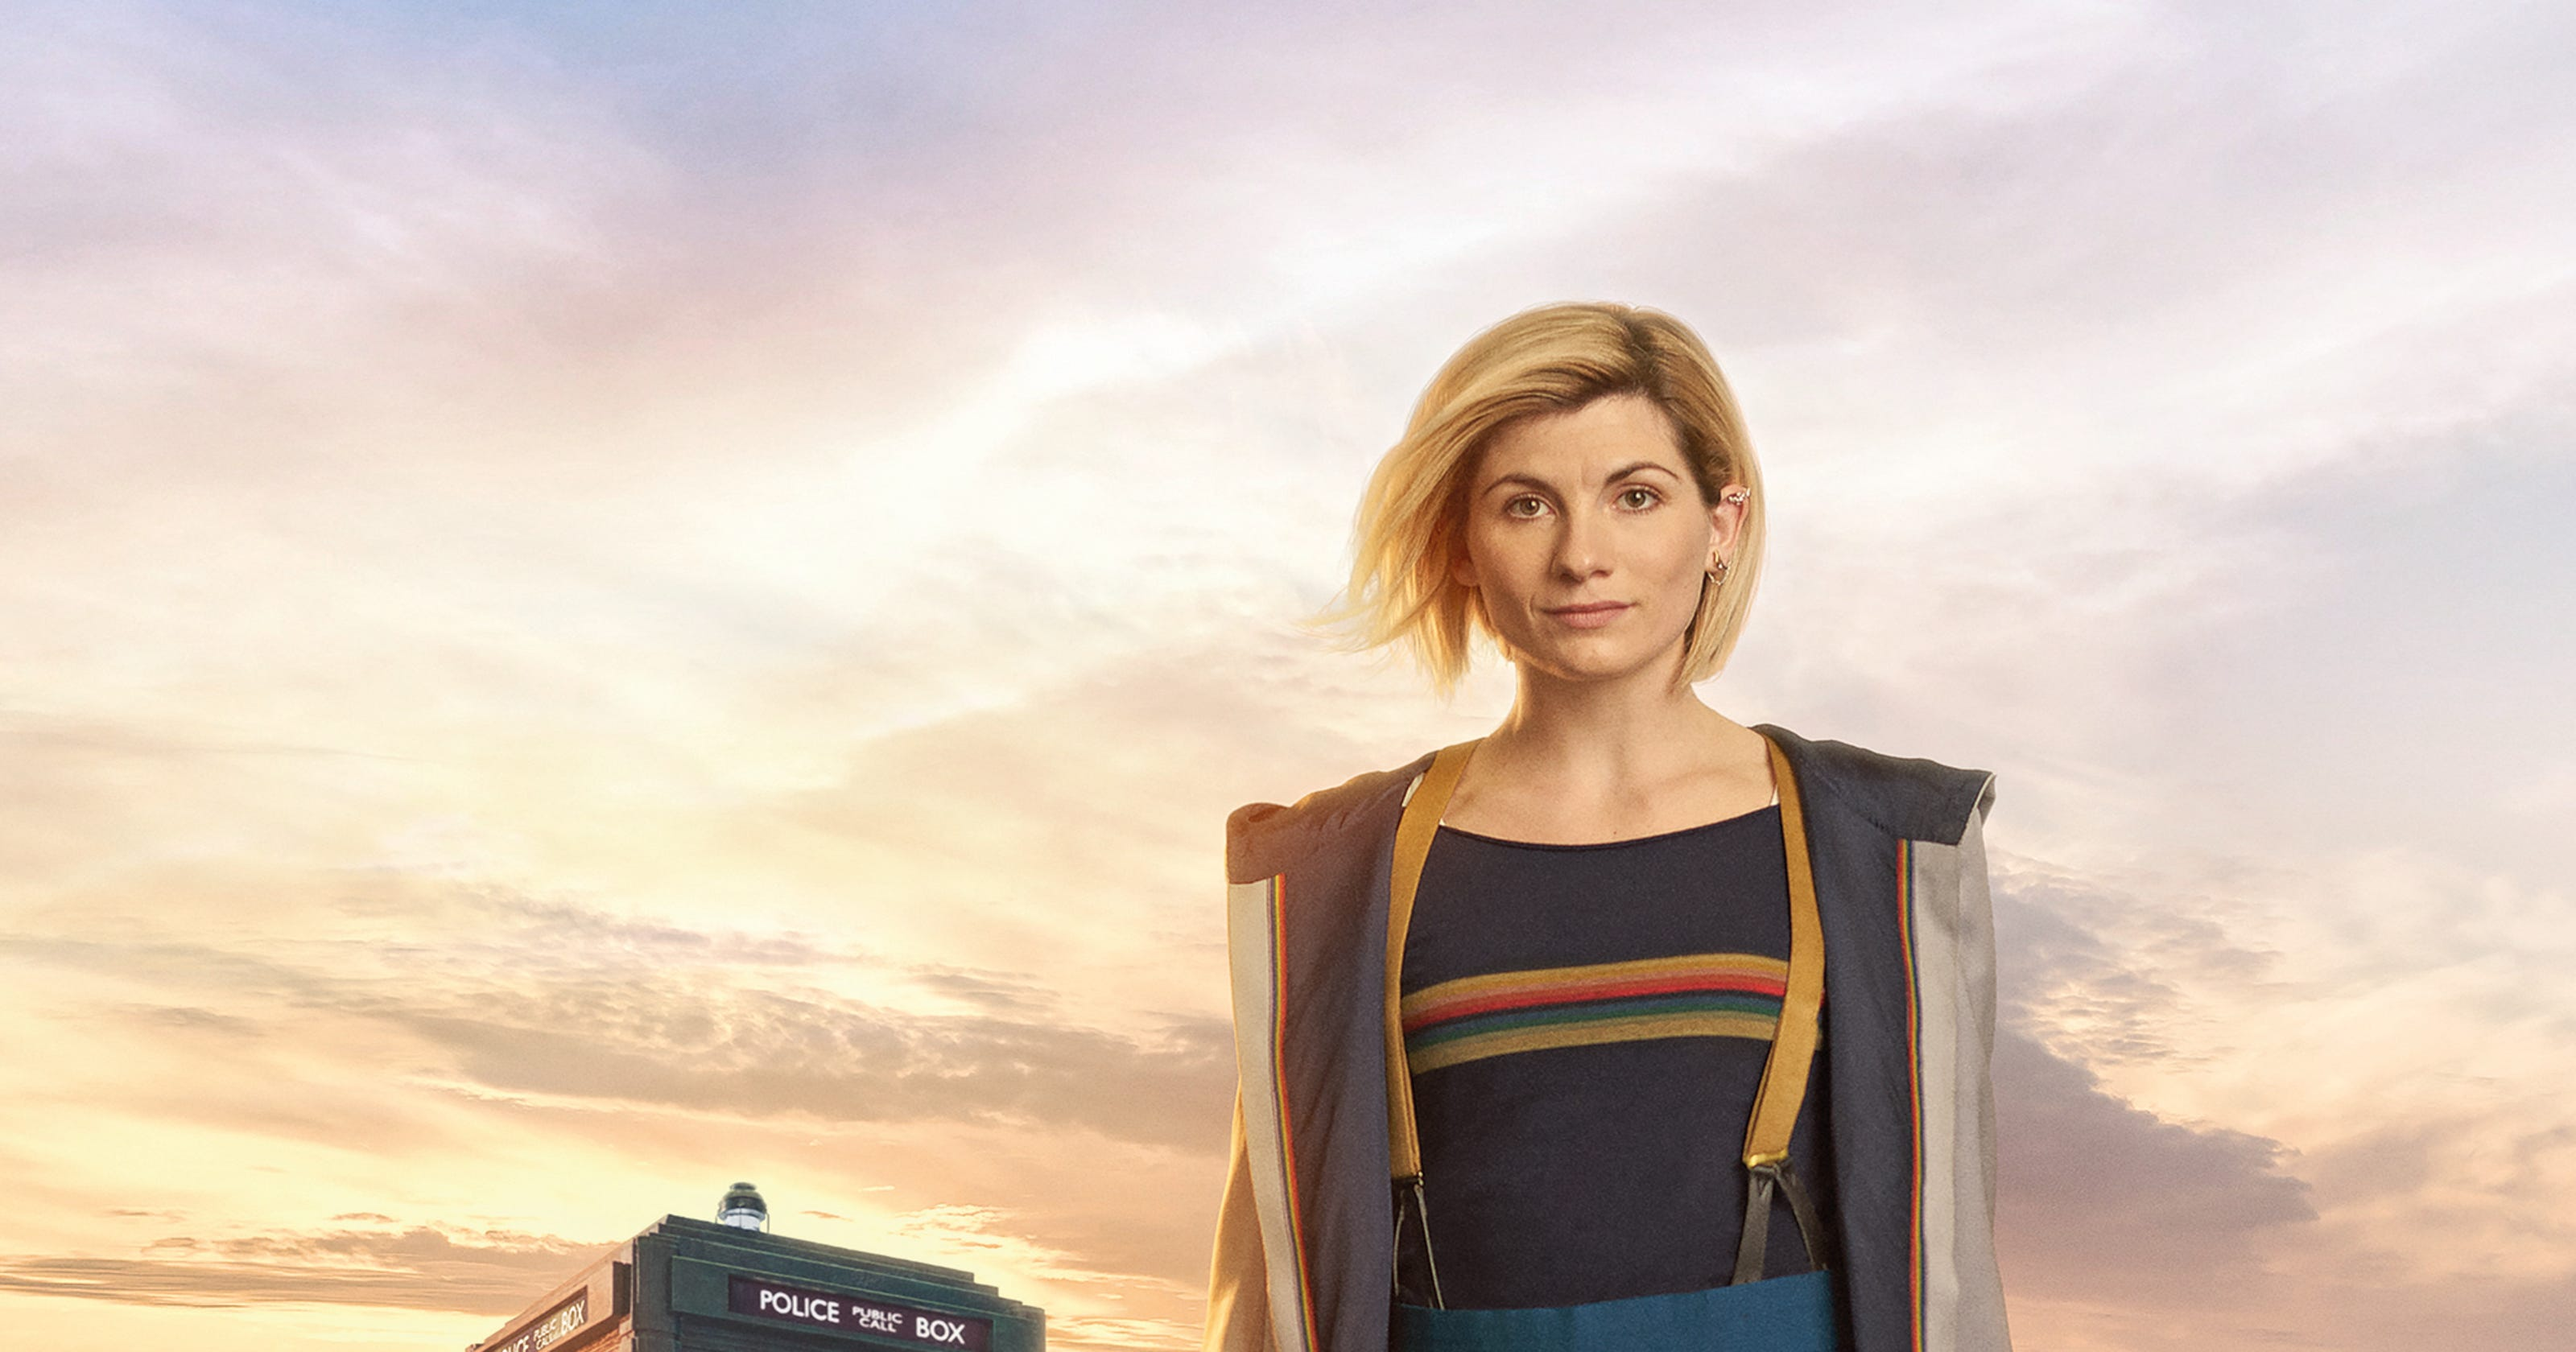 Jodie Whittaker Doctor Who Wallpaper: 'Doctor Who': Meet New Star Jodie Whittaker In A Season 11